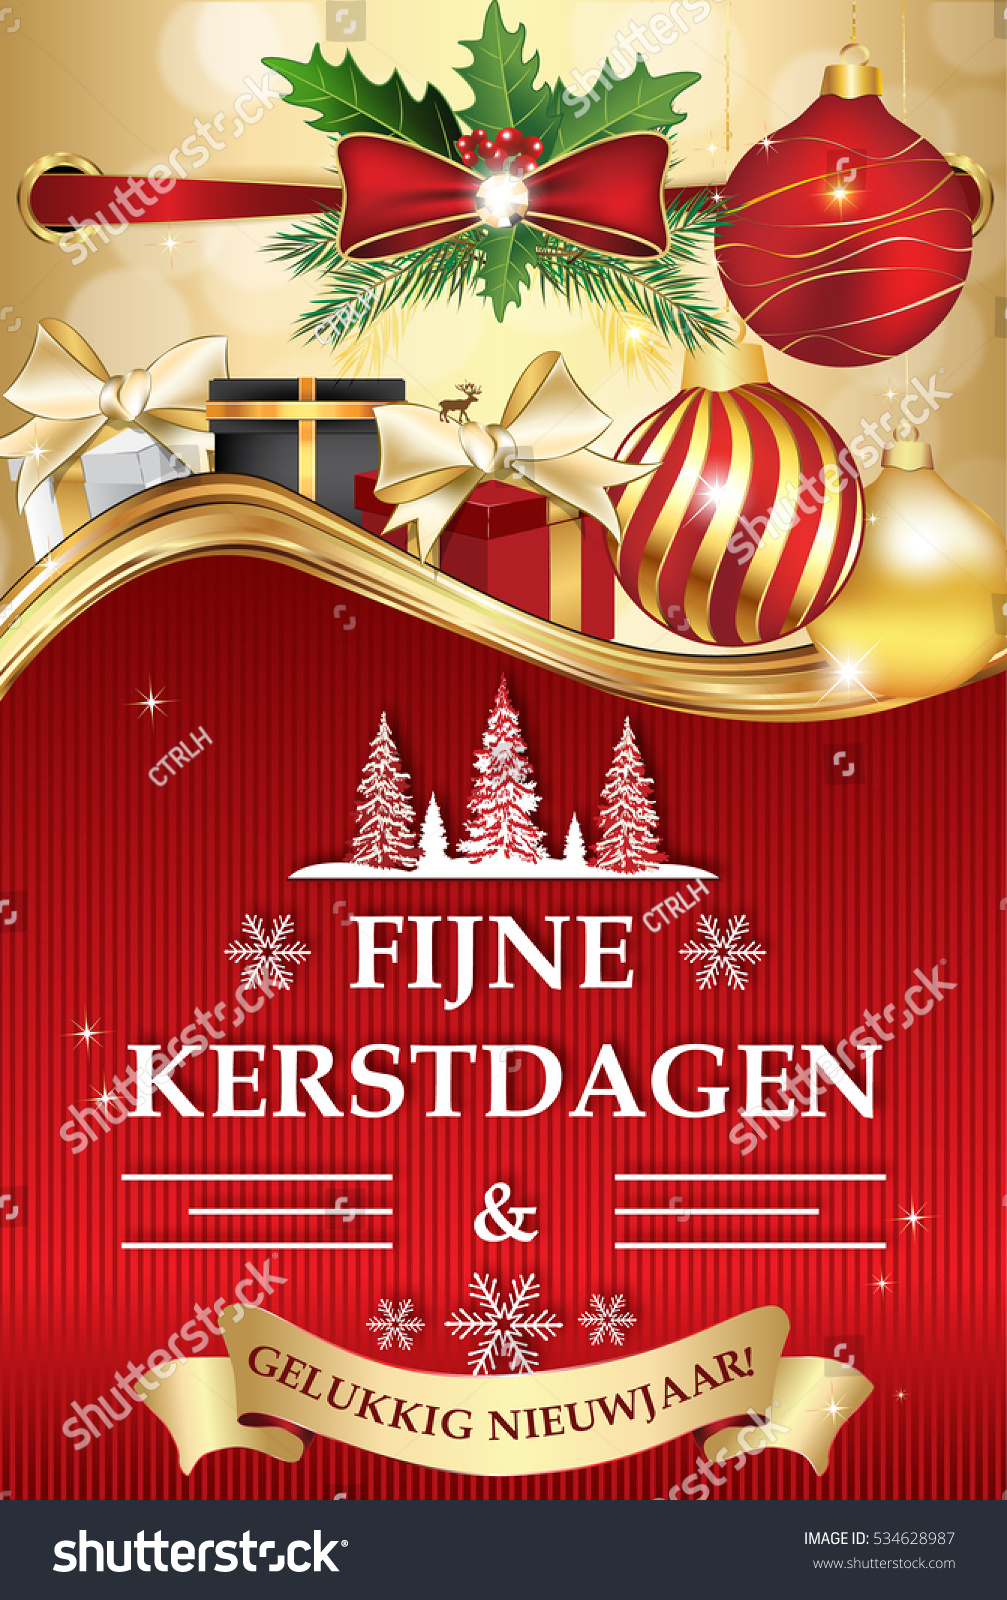 Dutch greeting card winter holiday text stock illustration 534628987 dutch greeting card for winter holiday text translation merry christmas and happy new year kristyandbryce Gallery